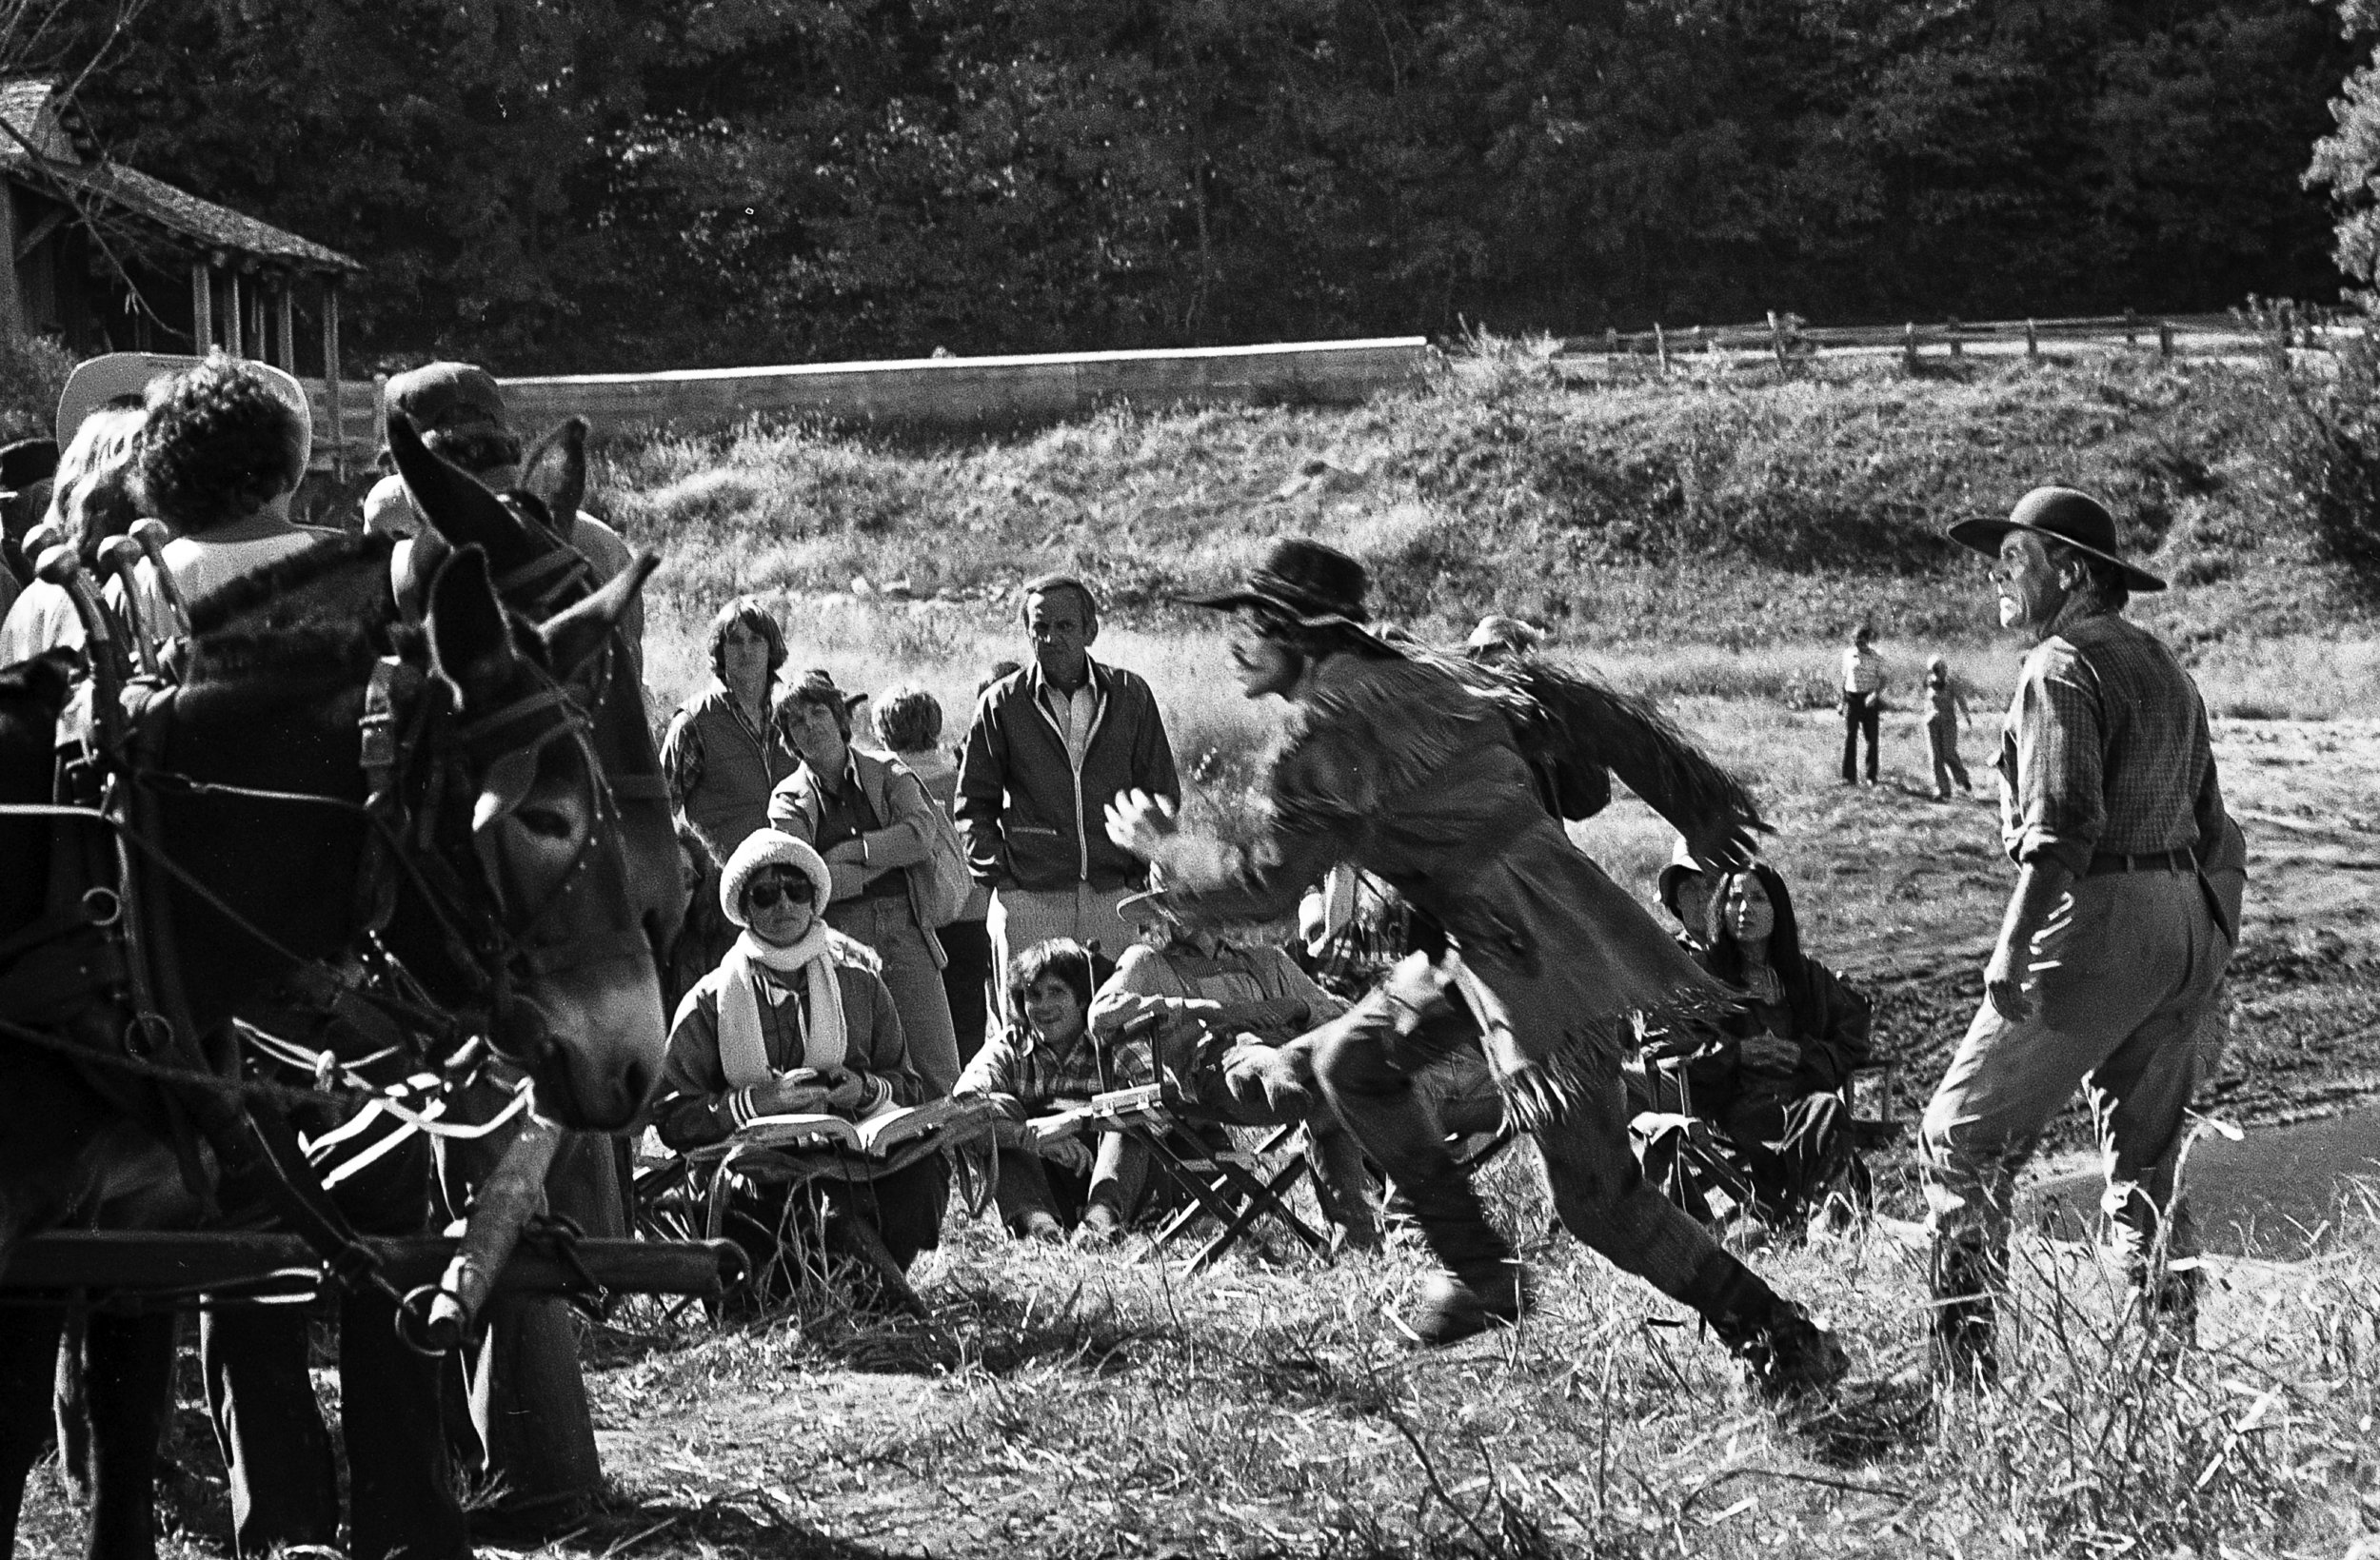 """Filming a scene for the television mini series """"The Chisholms"""" at New Salem State Historic Site, October 2, 1978. Lead actor Robert Preston is at right. File/Bill Hagen/The State Journal-Register"""